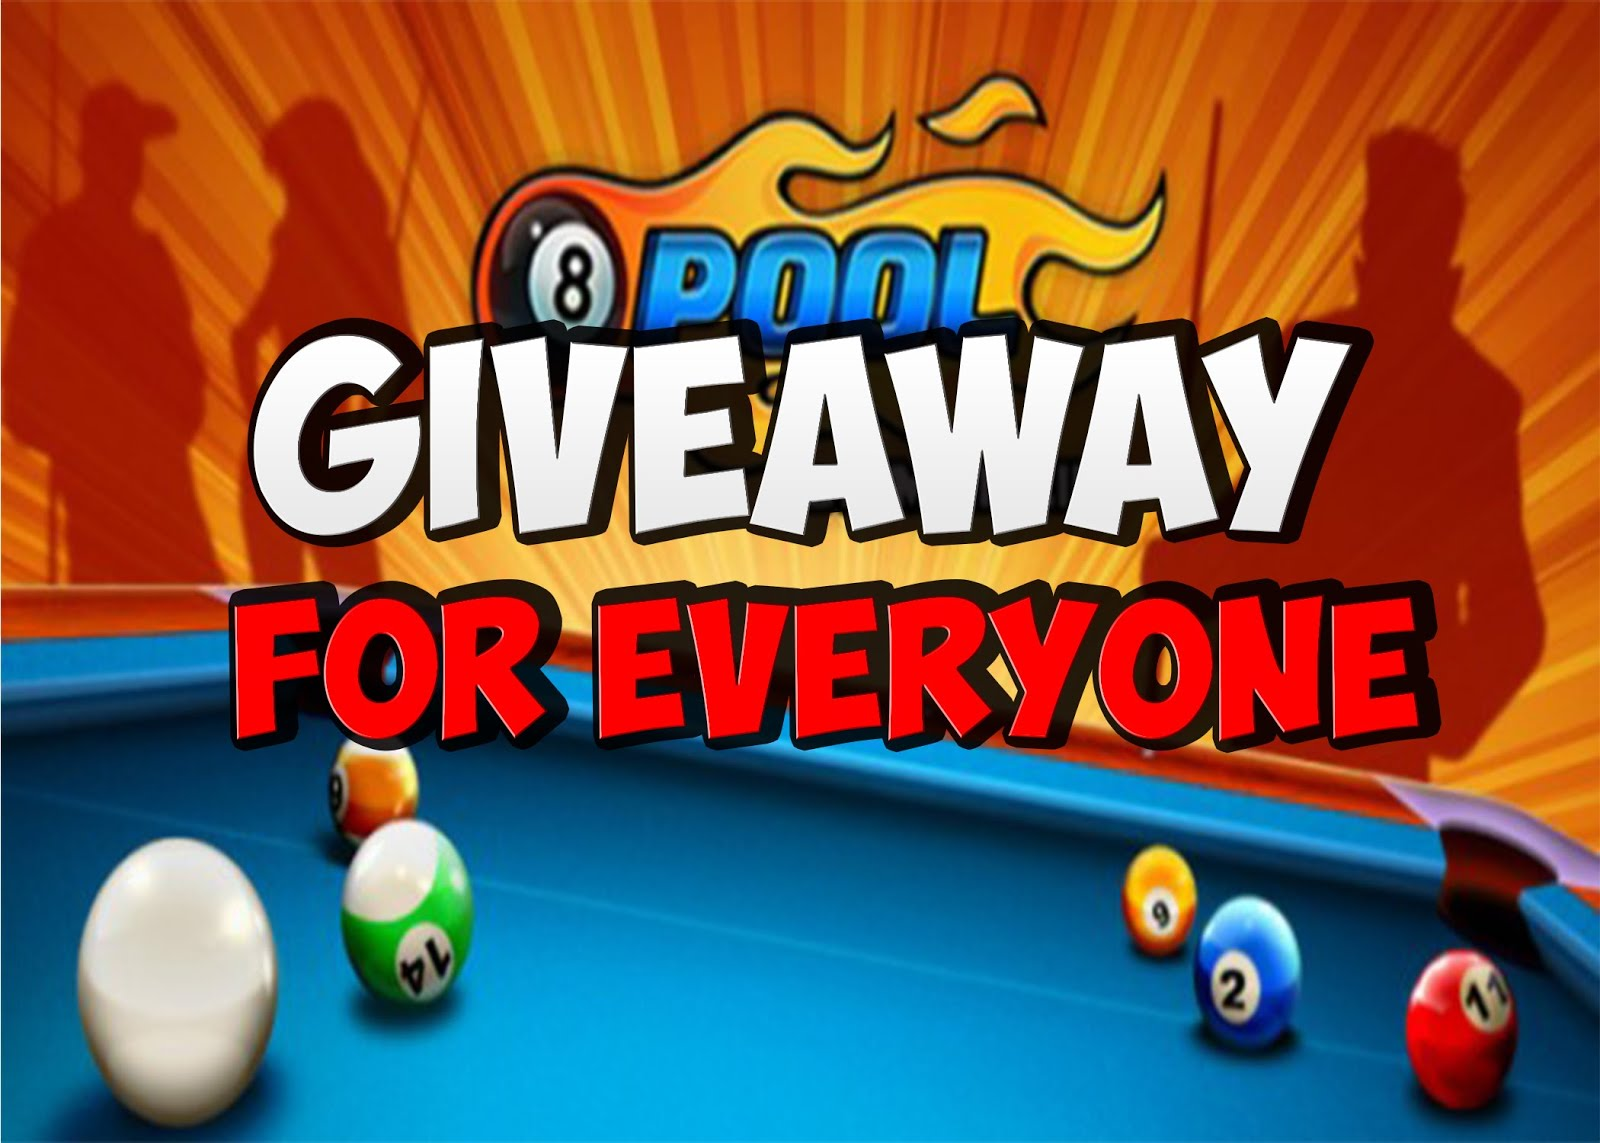 8 BALL POOL GIVEAWAY UNIQUE ID : - HACKSTER'S BLOG -